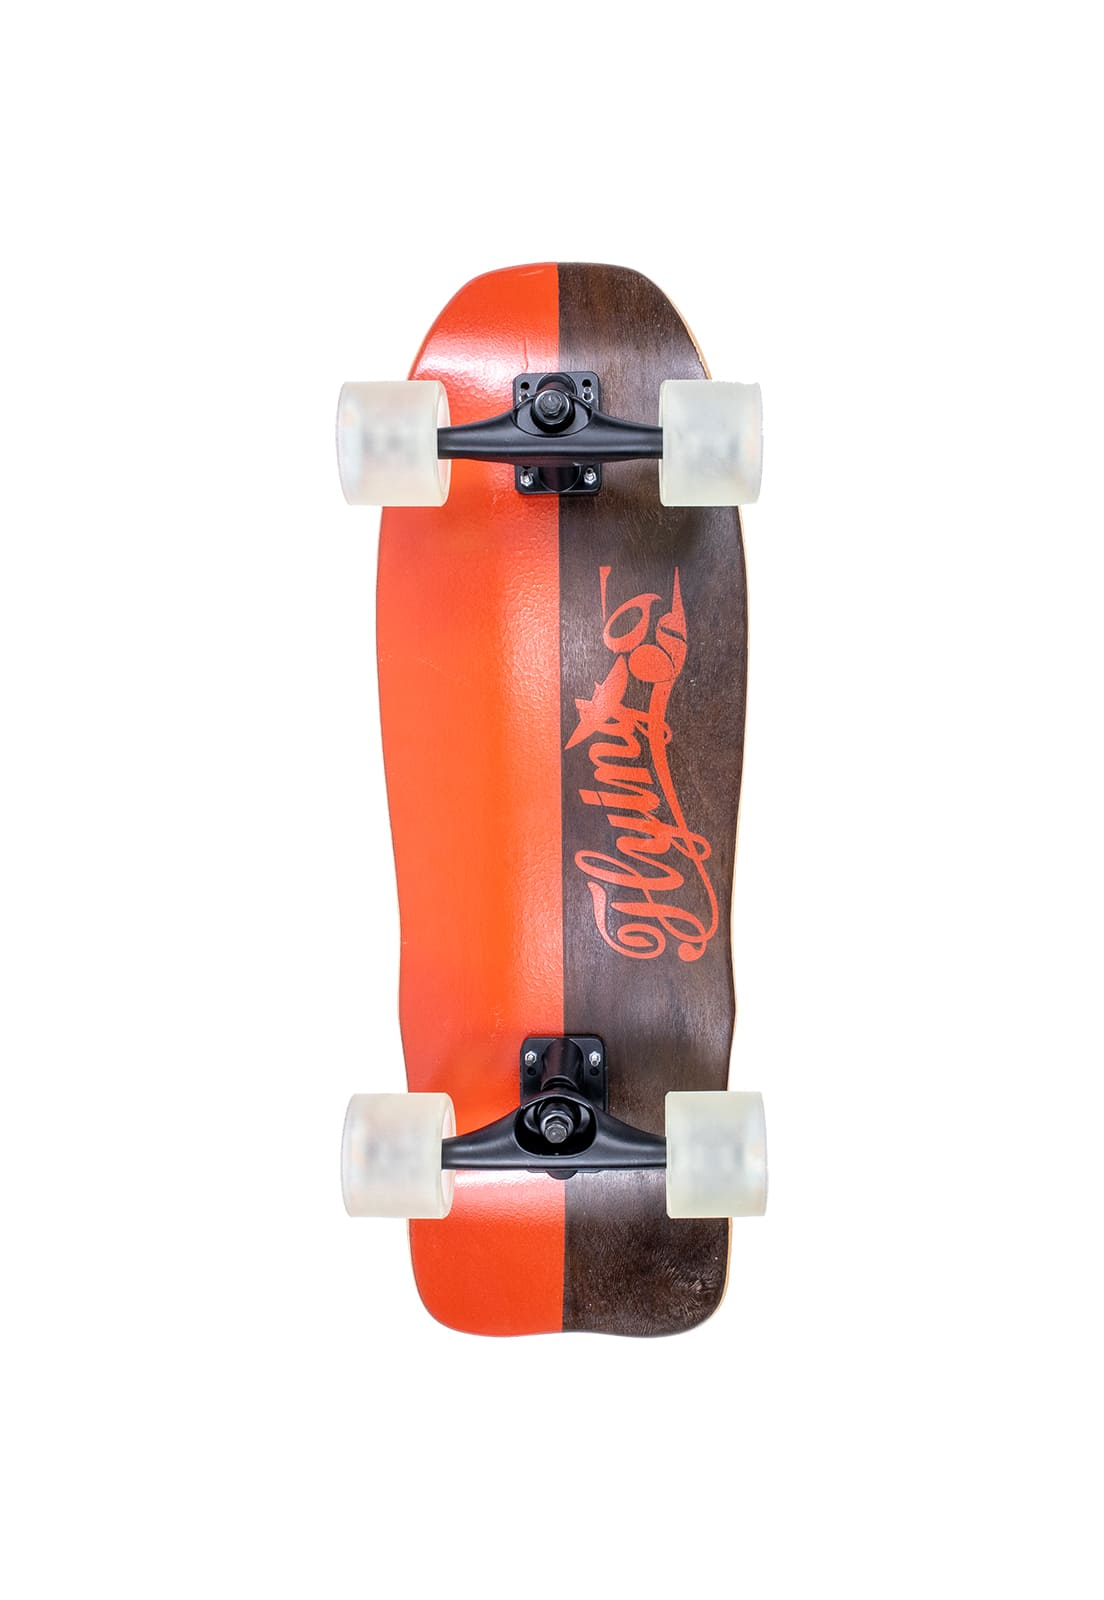 "Skate Simulador de Surf Flying Importado 9.8"" Truck 160mm"